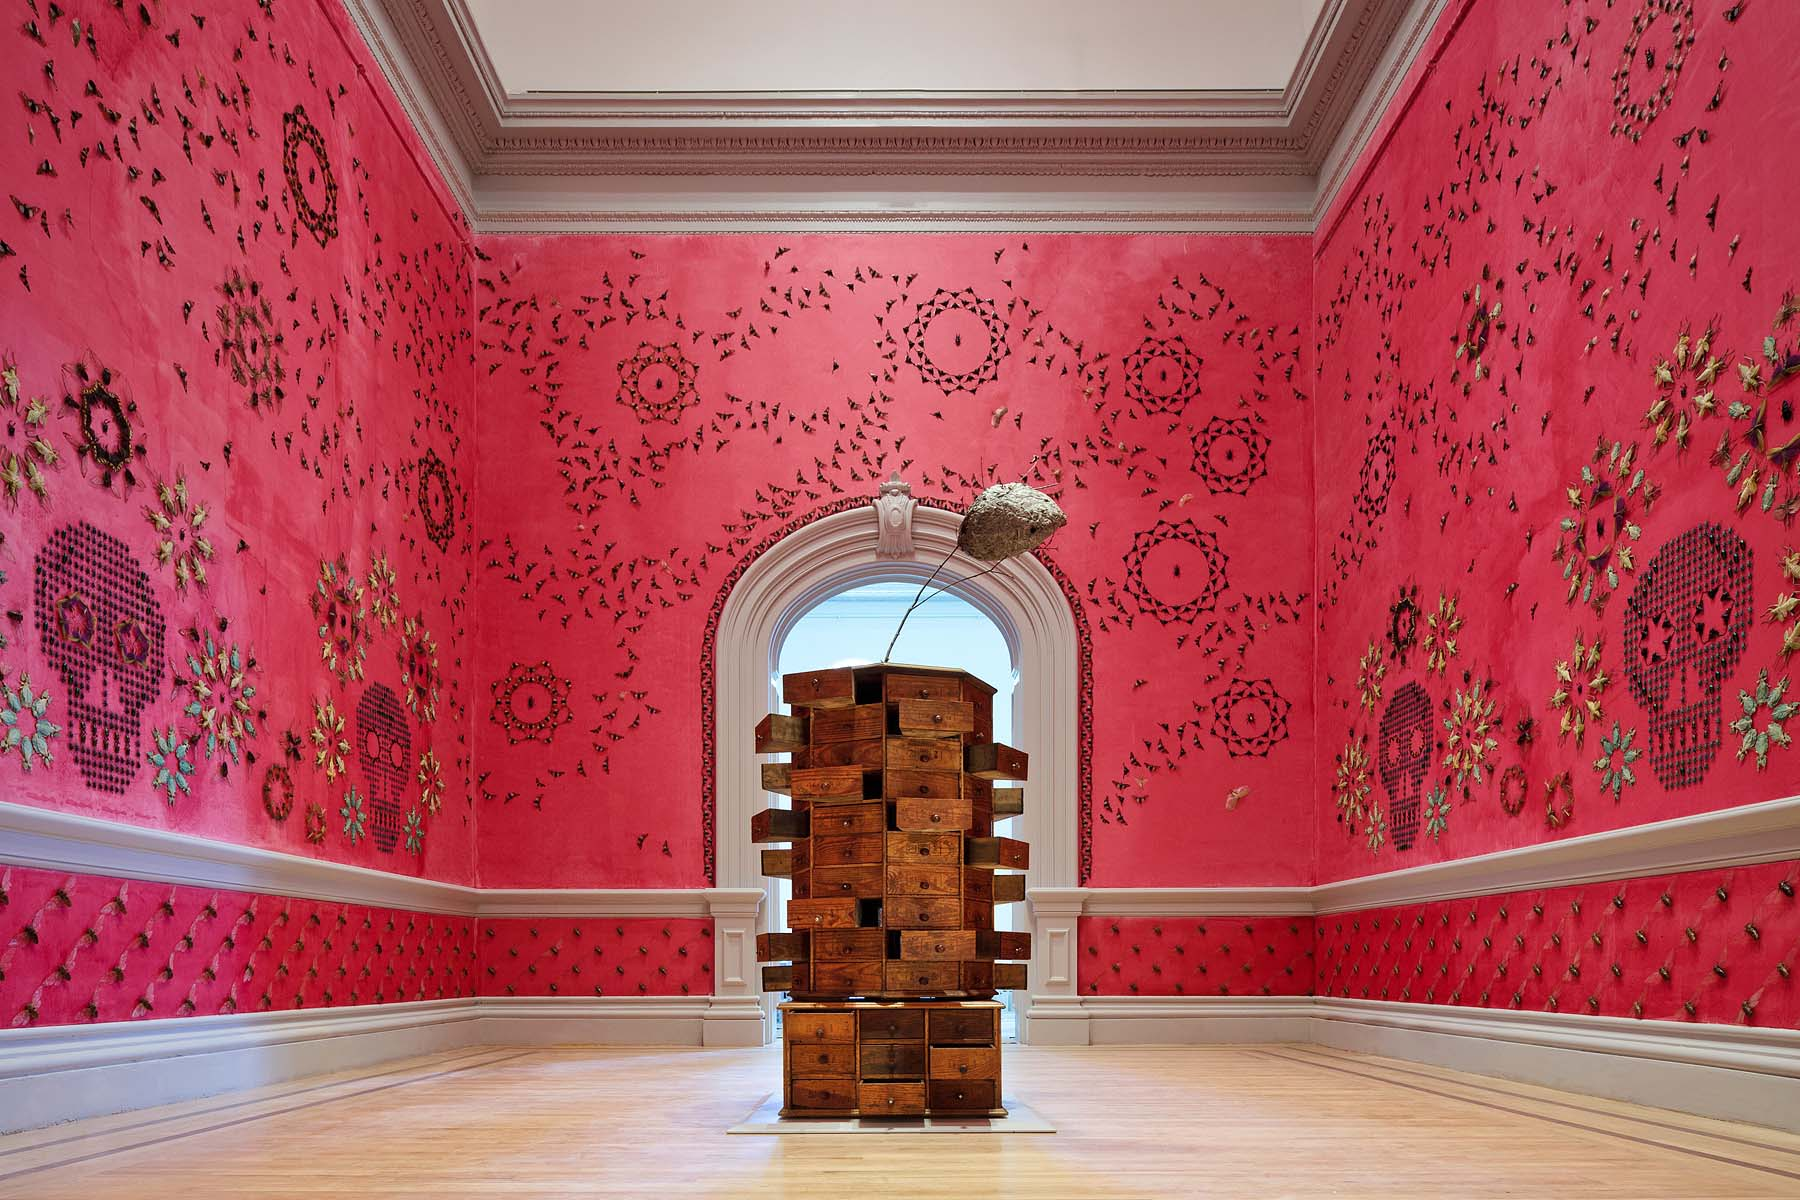 Jennifer Angus, In the Midnight Garden, 2015. Renwick Gallery of the Smithsonian American Art Museum. Photo by Ron Blunt.